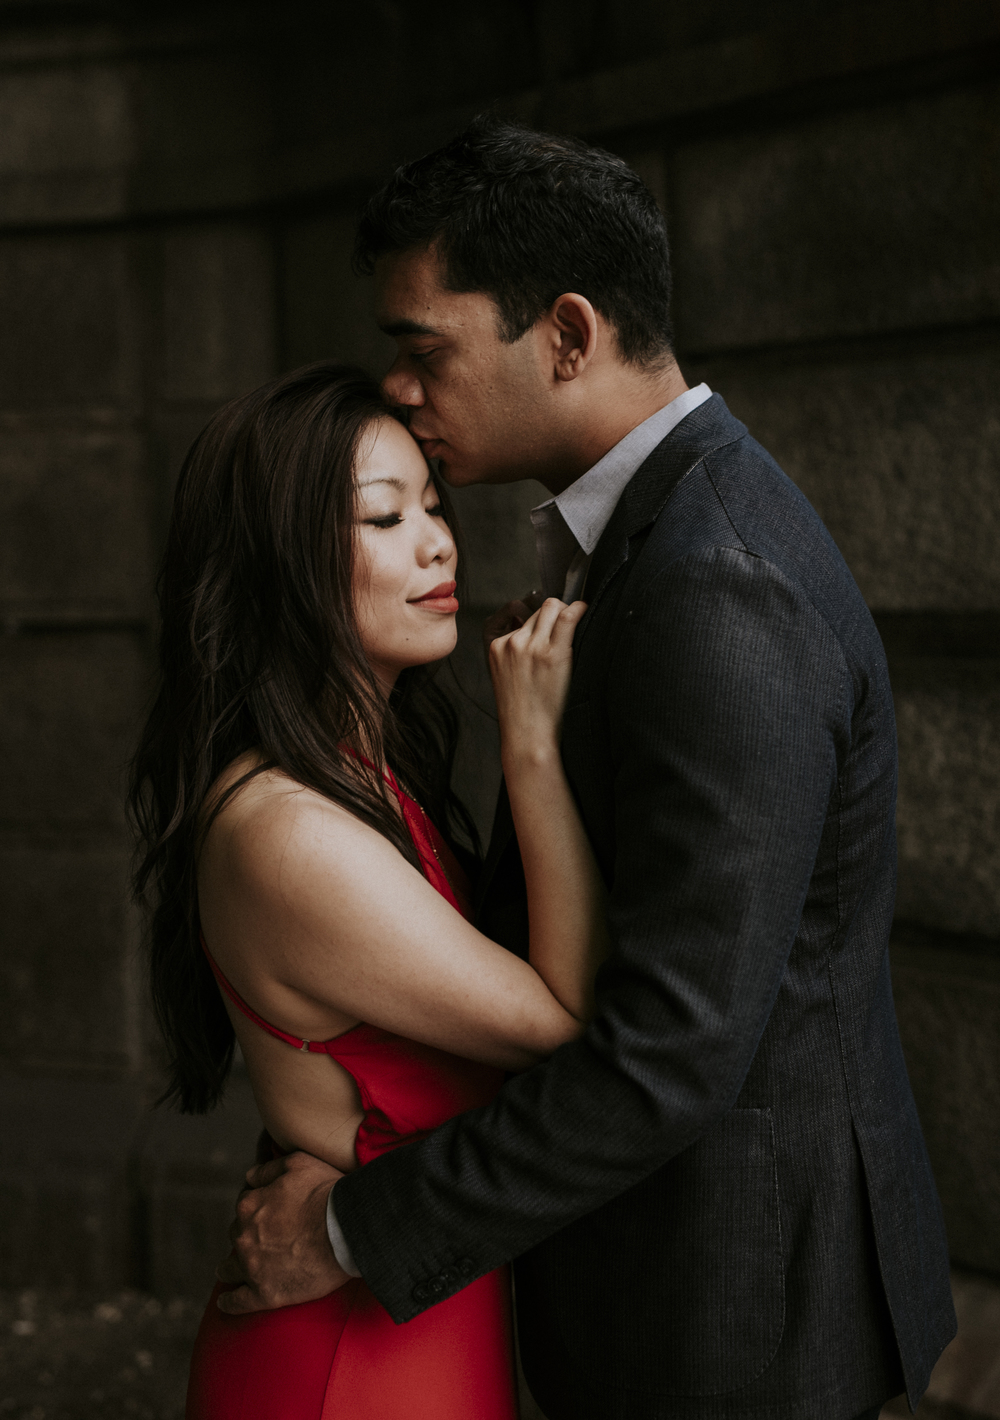 Brooklyn_engagement_shoot1148.JPG